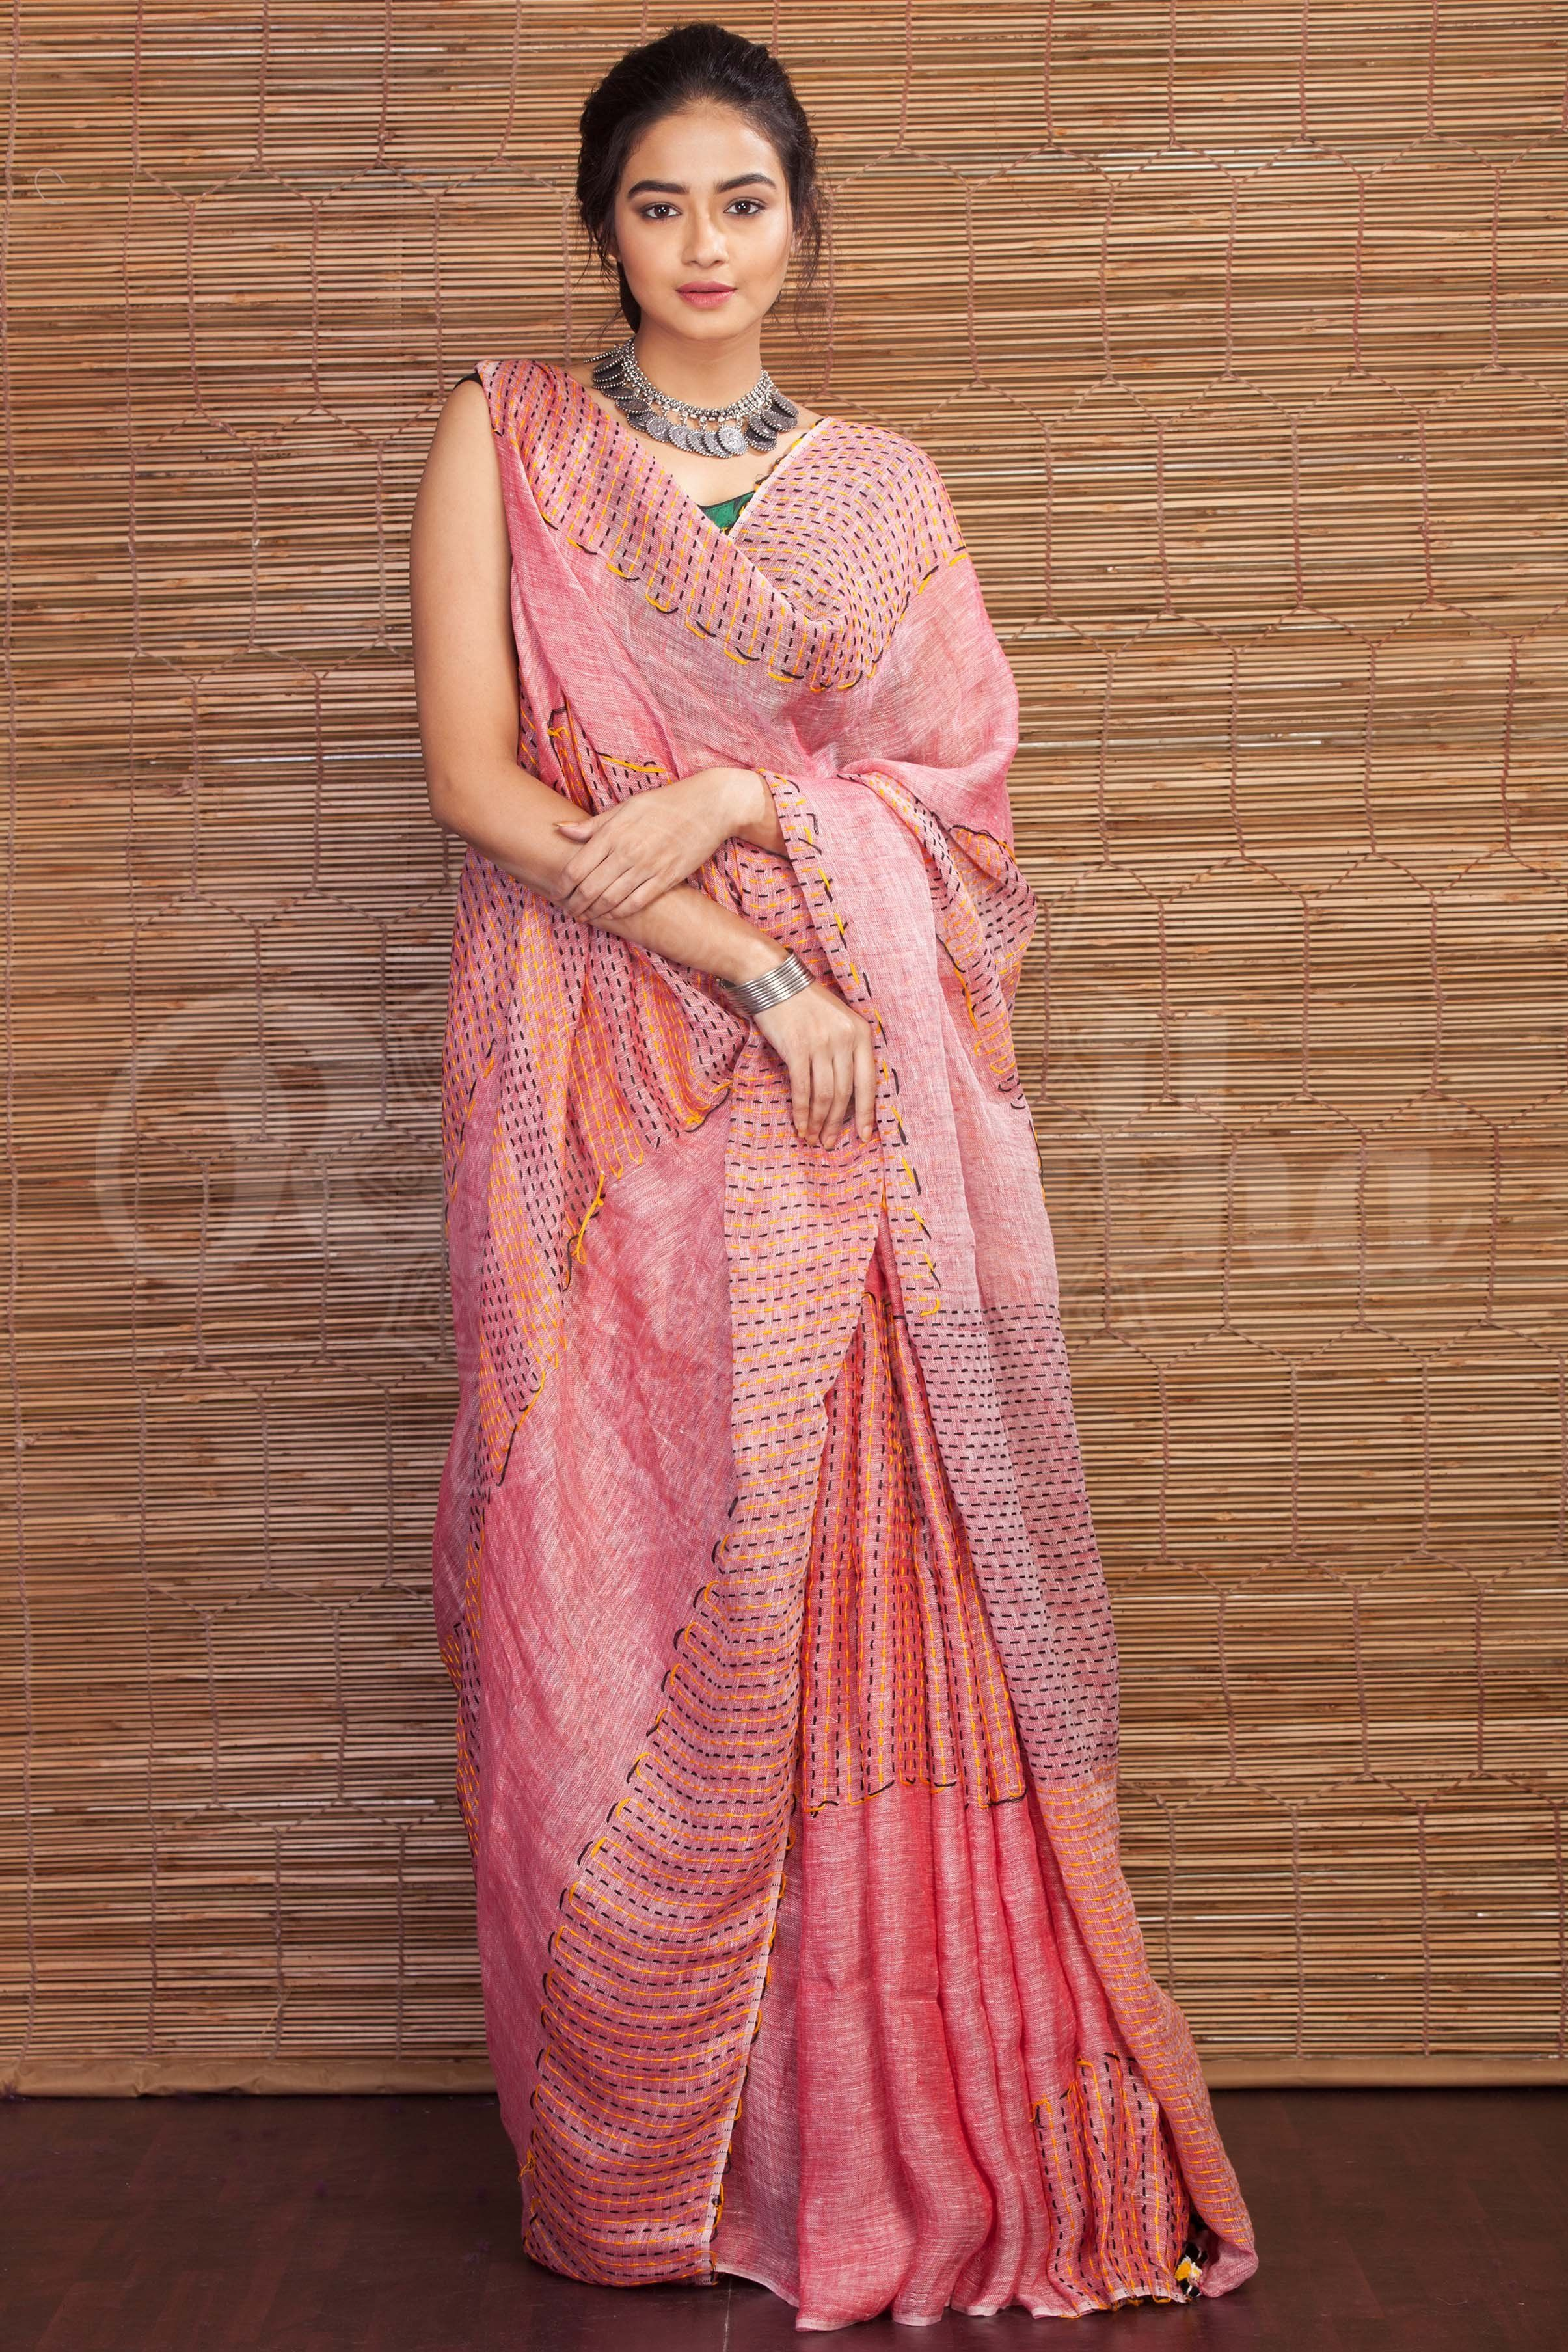 9f7583f717be4 Linen Saree With Thread Stitching - Roopkatha - A Story of Art ...